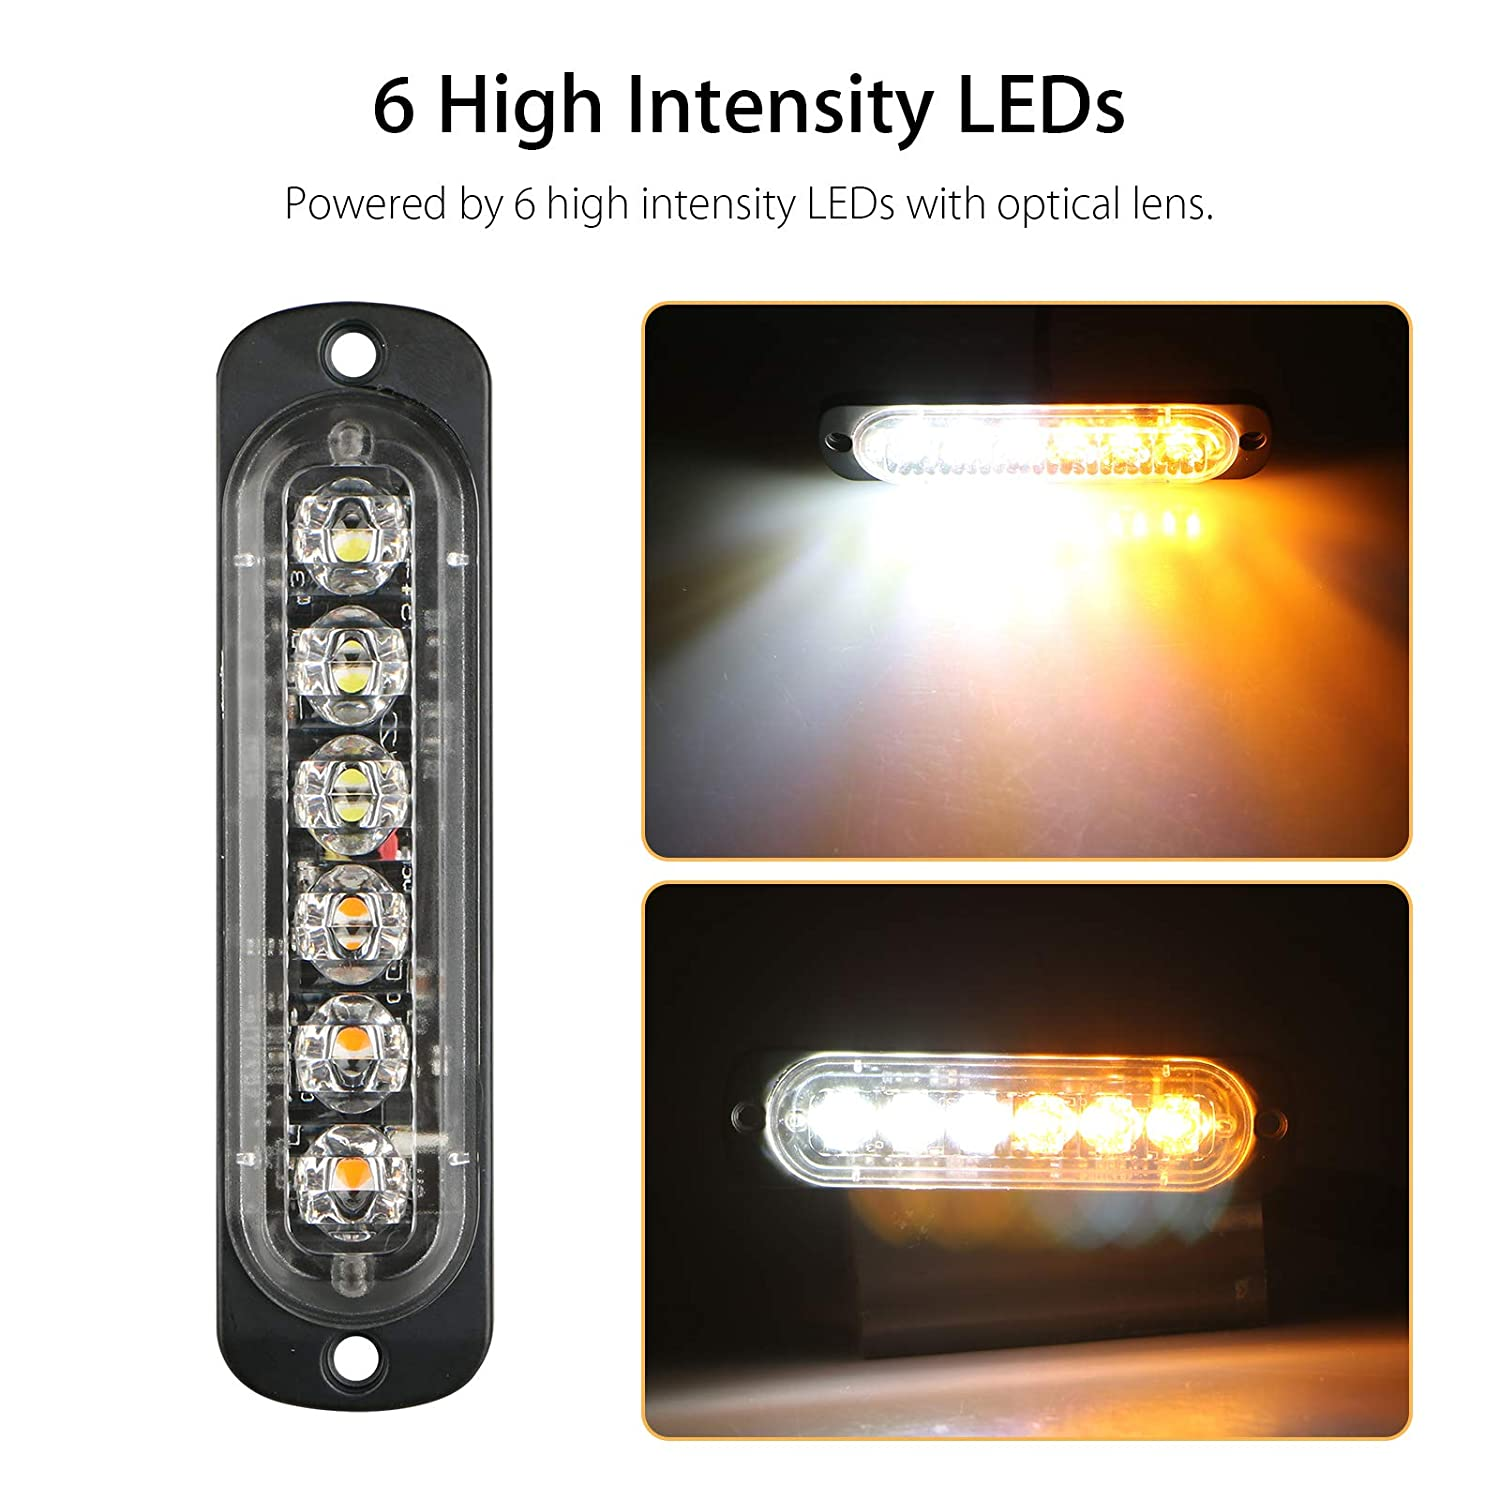 ATVs Universal 10-Pack 6 LED 18W Surface Mount Amber//White Emergency Warning Hazard Flashing Strobe Light Bar for Off Road Vehicle EEEKit Emergency Strobe Lights Truck